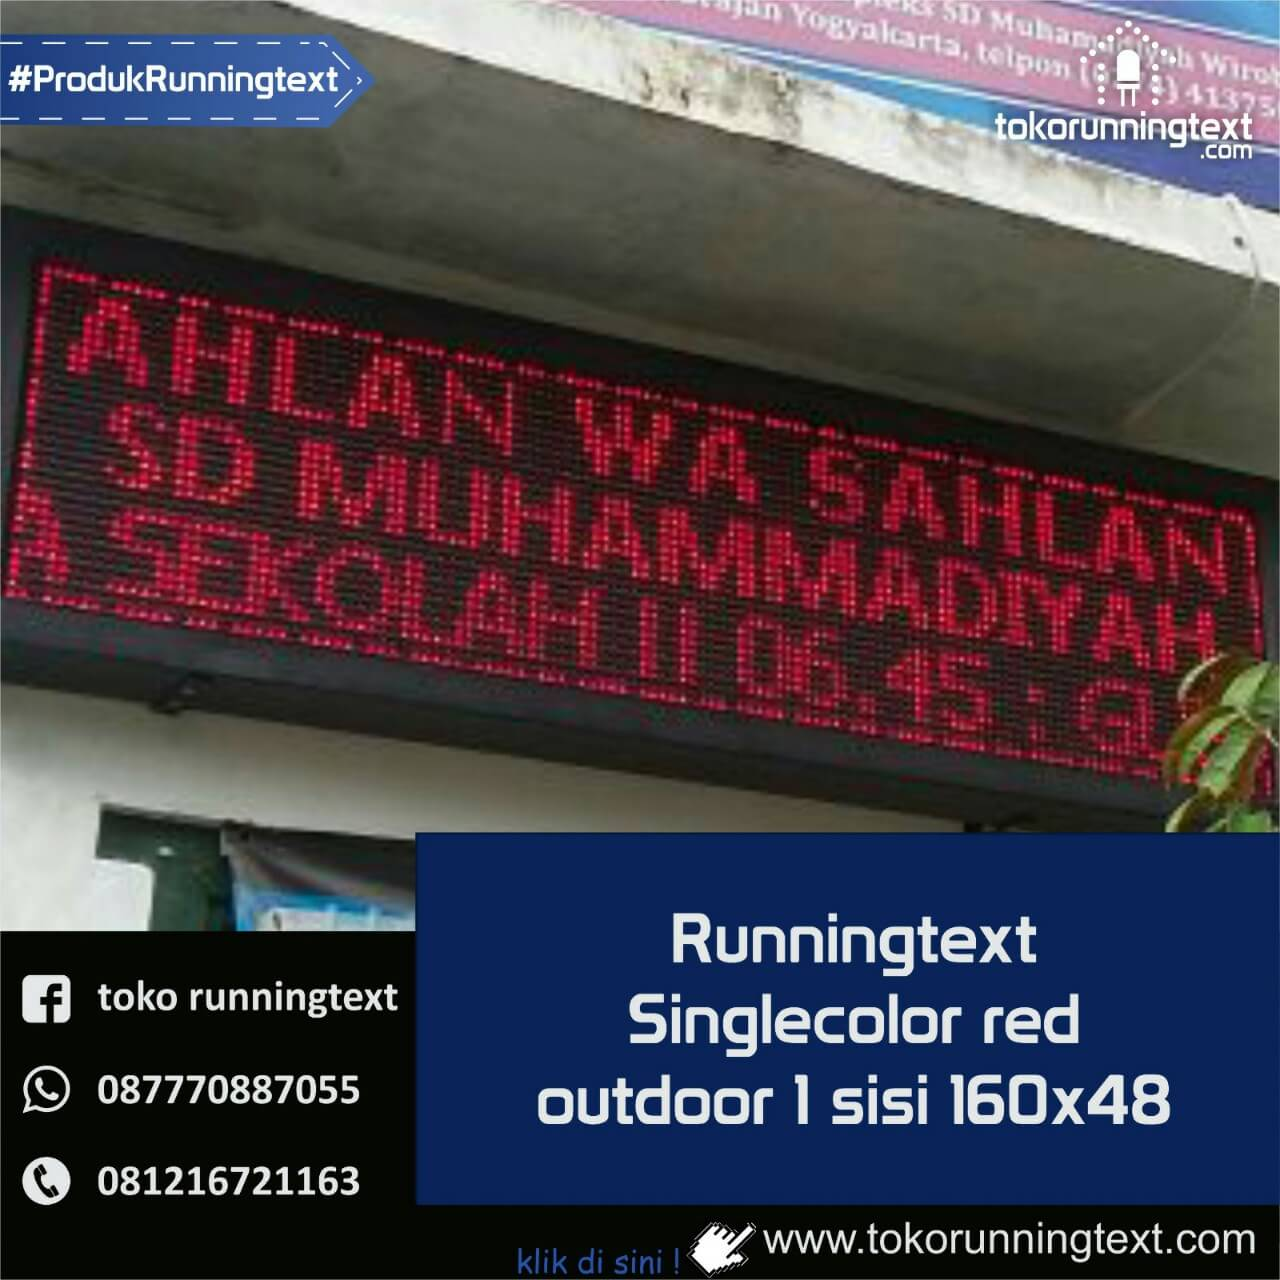 Runningtext singlecolor Red outdoor 1 sisi 160x48